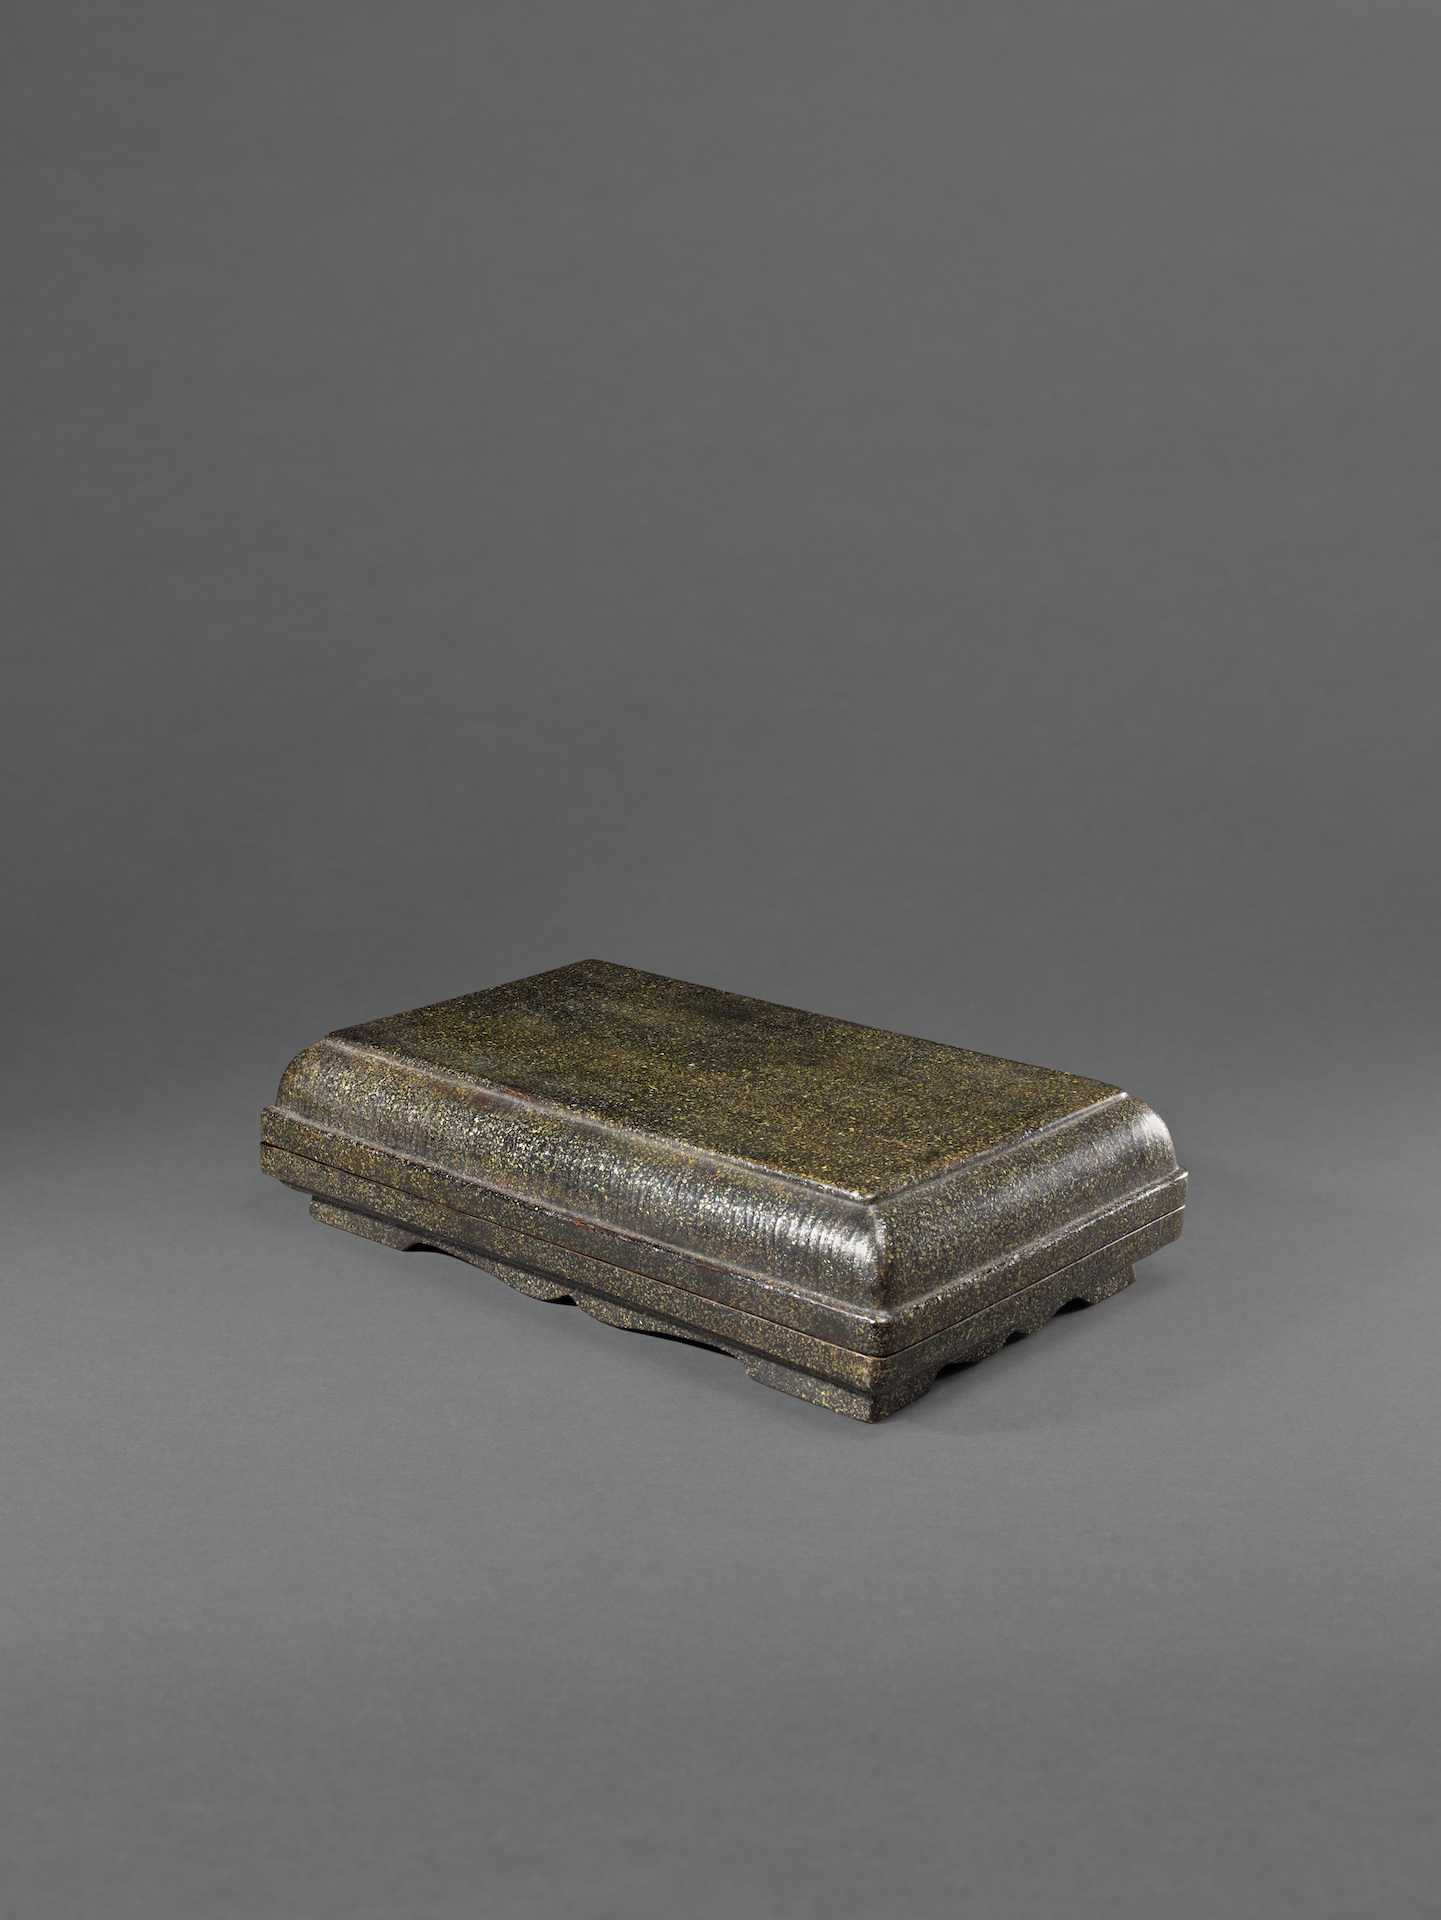 A BLACK LACQUER WITH CRUSHED MOTHER-OF-PEARL PRESENTATION BOX AND COVER  Ming dynasty (1368-1644),  16th century Length: 46 cm, 18 inches Width: 28.2 cm, 11⅛ inches Height: 11.5 cm, 4 ½ inches